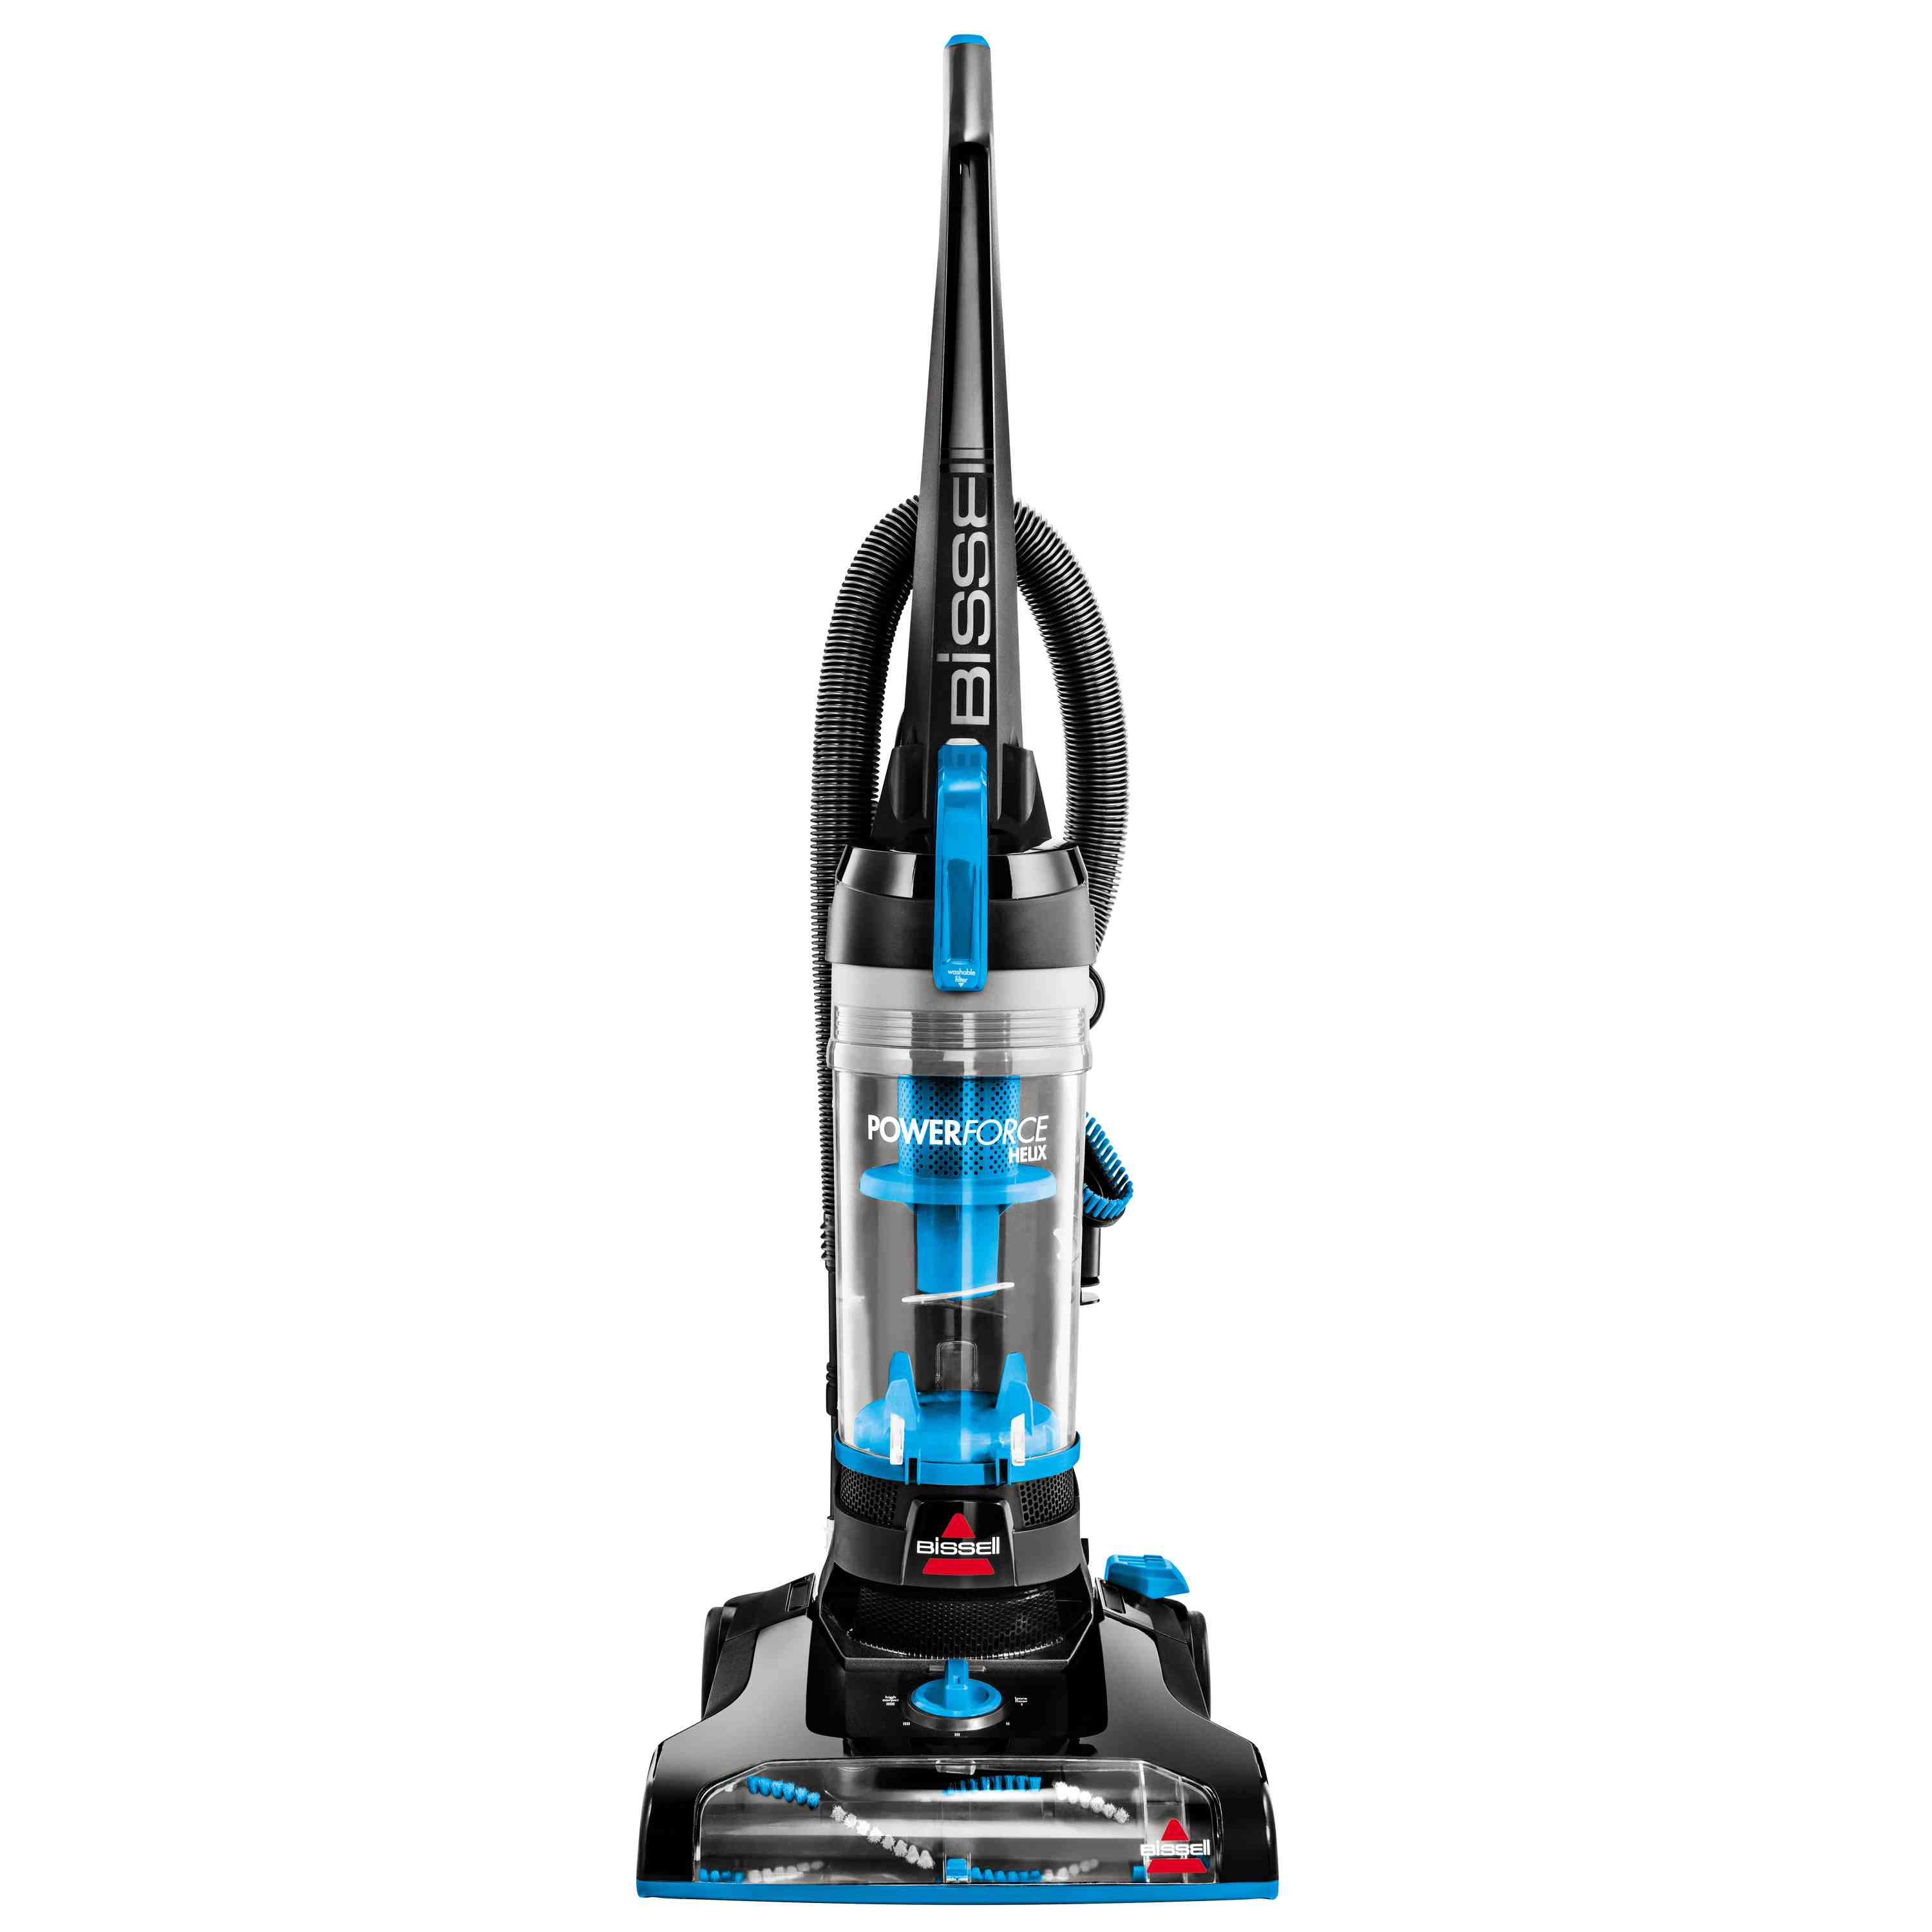 miele vacuum cleaner for hardwood floors of the 10 best vacuum cleaners to buy in 2018 intended for best budget bissell powerforce helix bagless upright vacuum